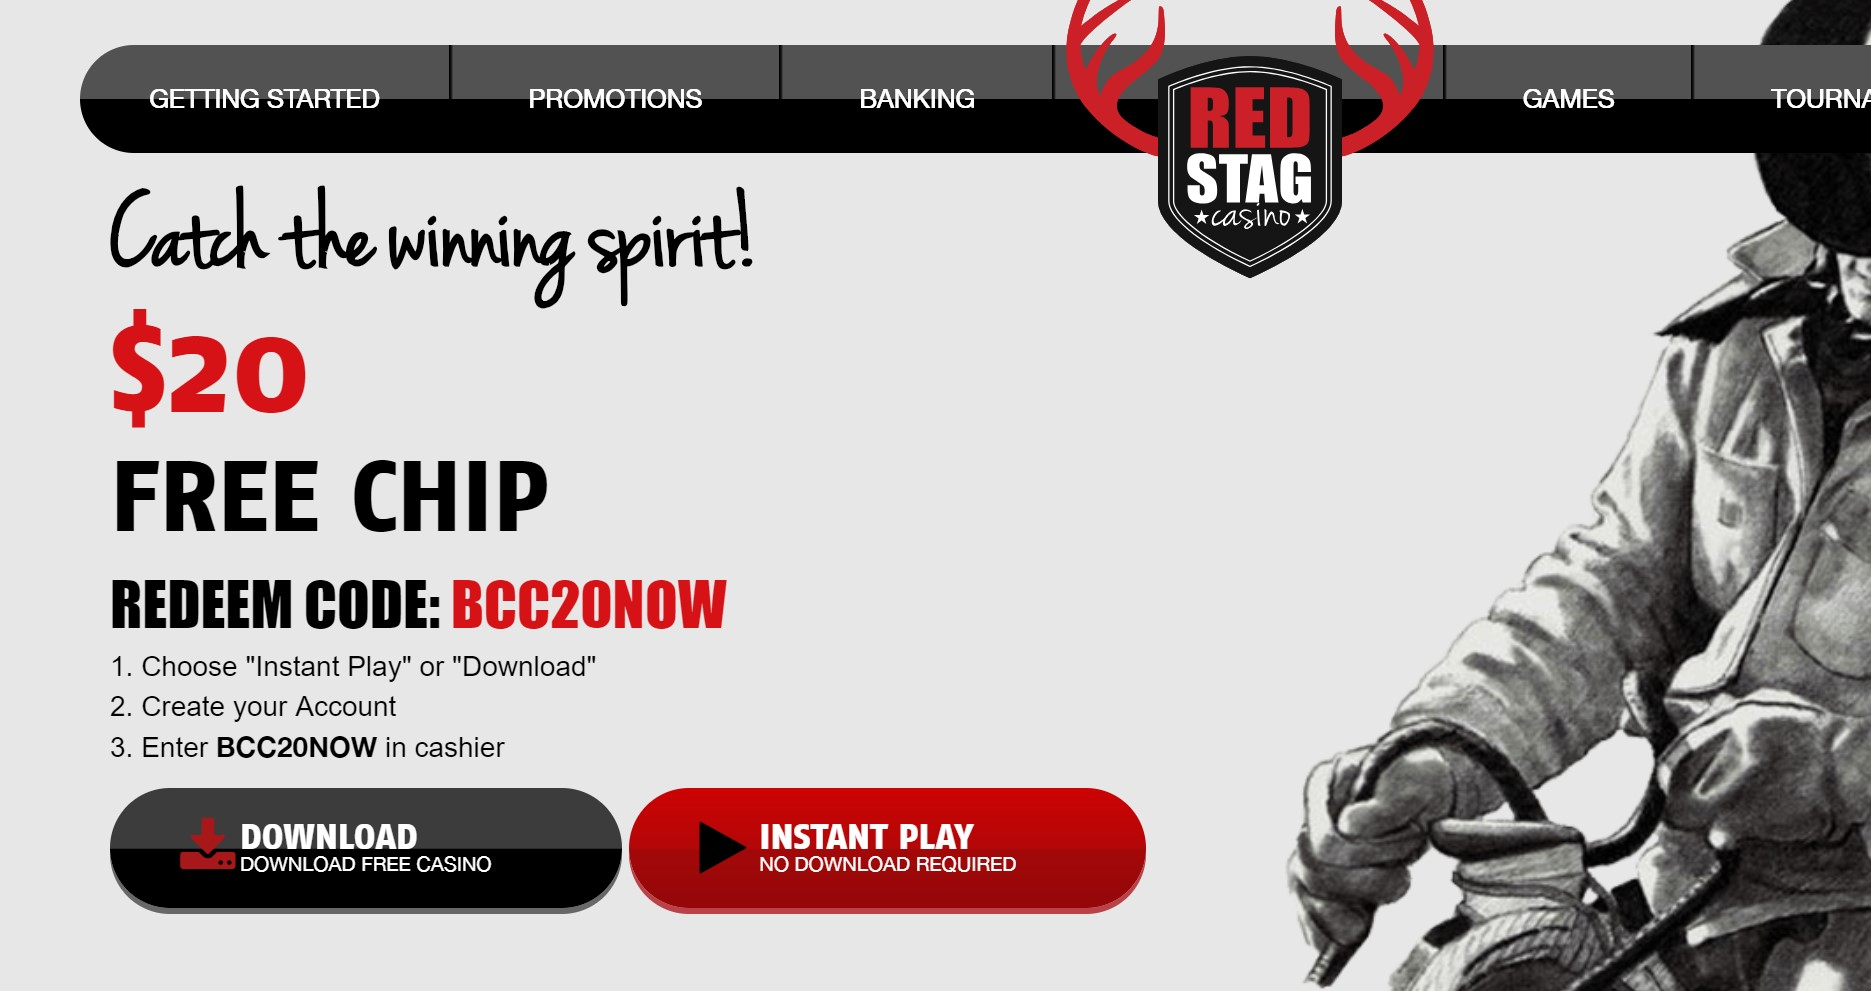 Red Stag Casino 20 Free Offer 20 Free Chips No Deposit Required